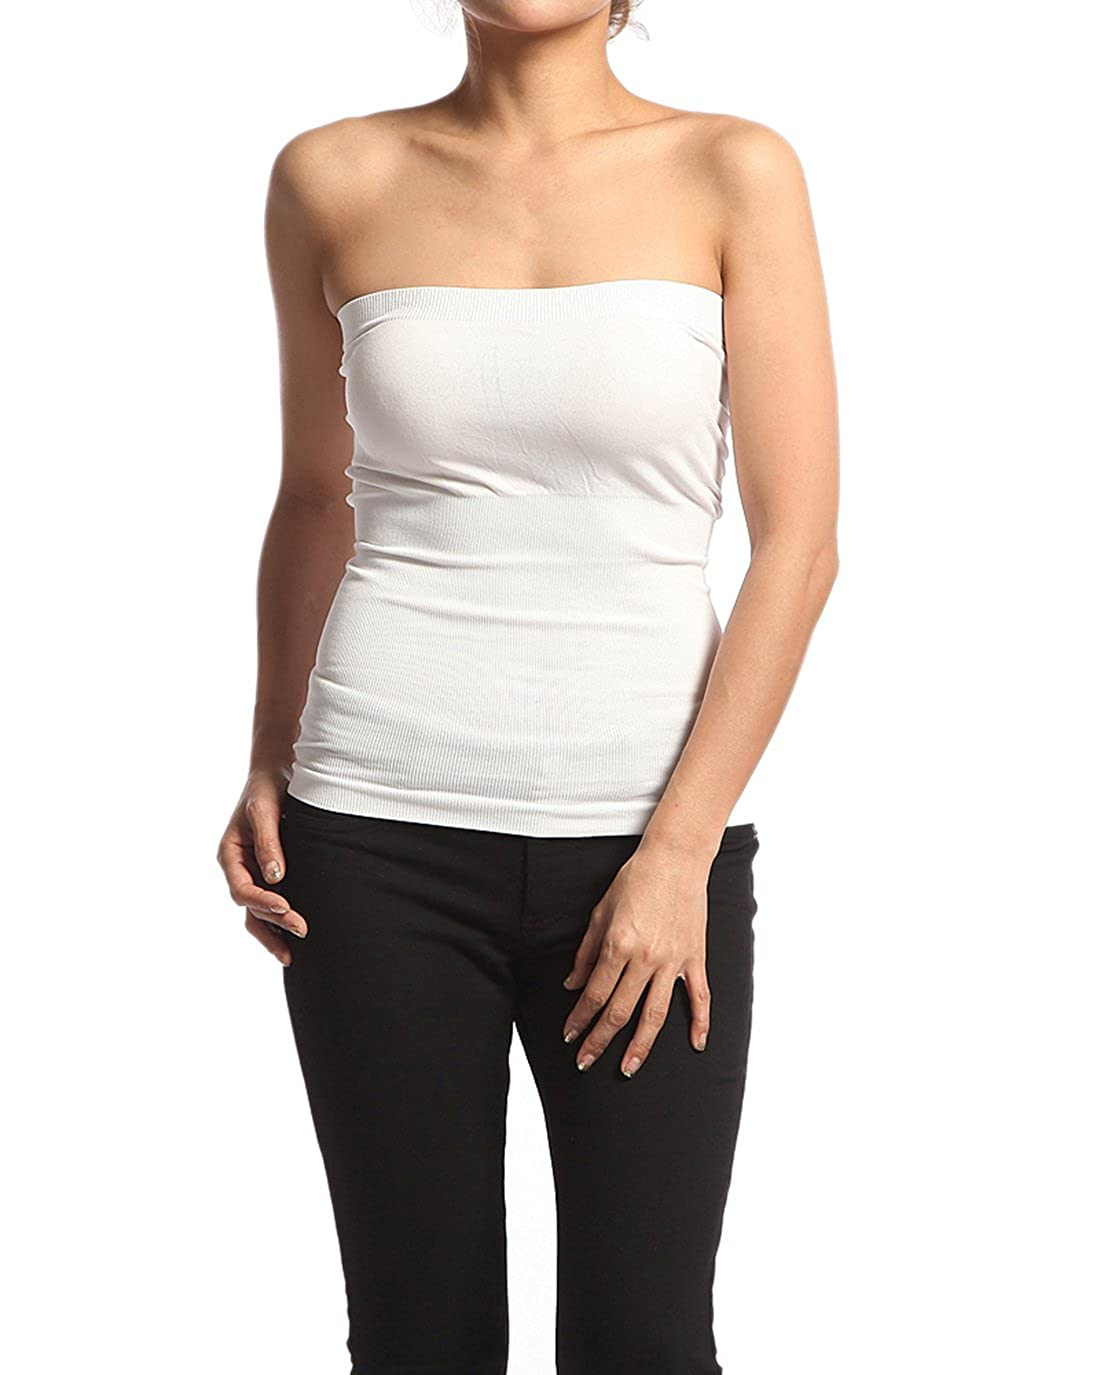 a3313fcc91 Plain Stretch Seamless Strapless Layering Tube Top One Size Fits All Black  at Amazon Women s Clothing store  Base Layer Tops